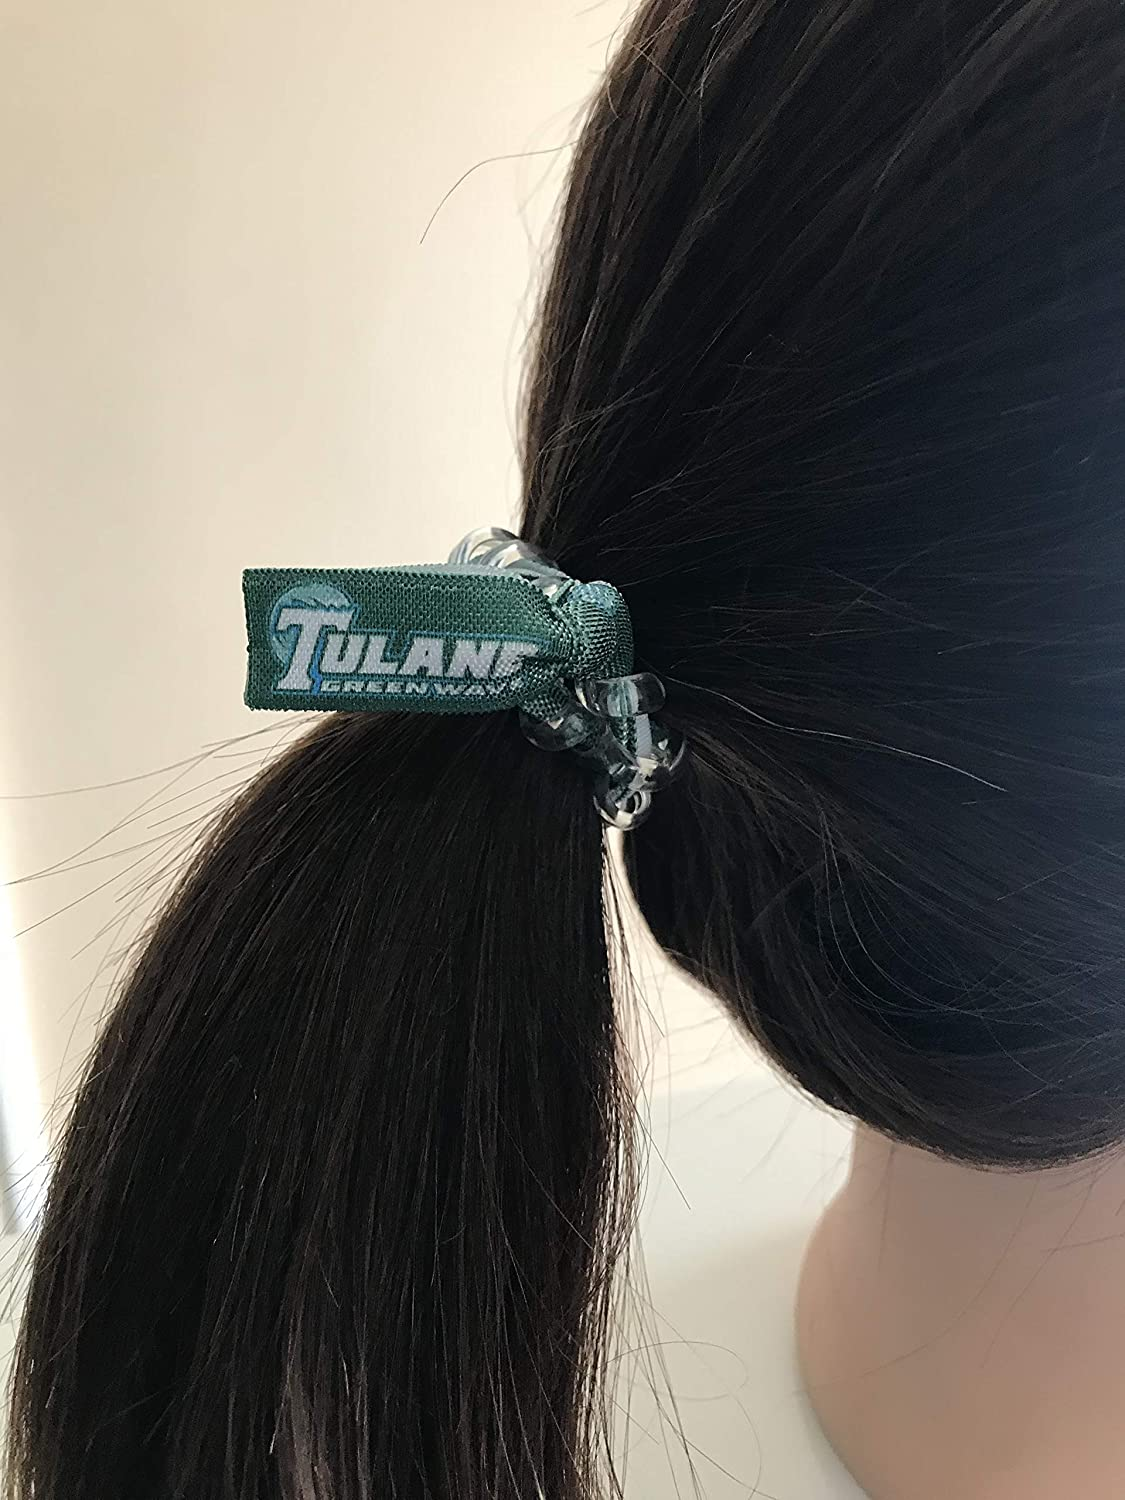 Amazon.com  Tulane Green Wave football secure sports hair tie hair cord hair  elastic for all pony tail types messy buns foe hair art  Handmade 882ab9657d0